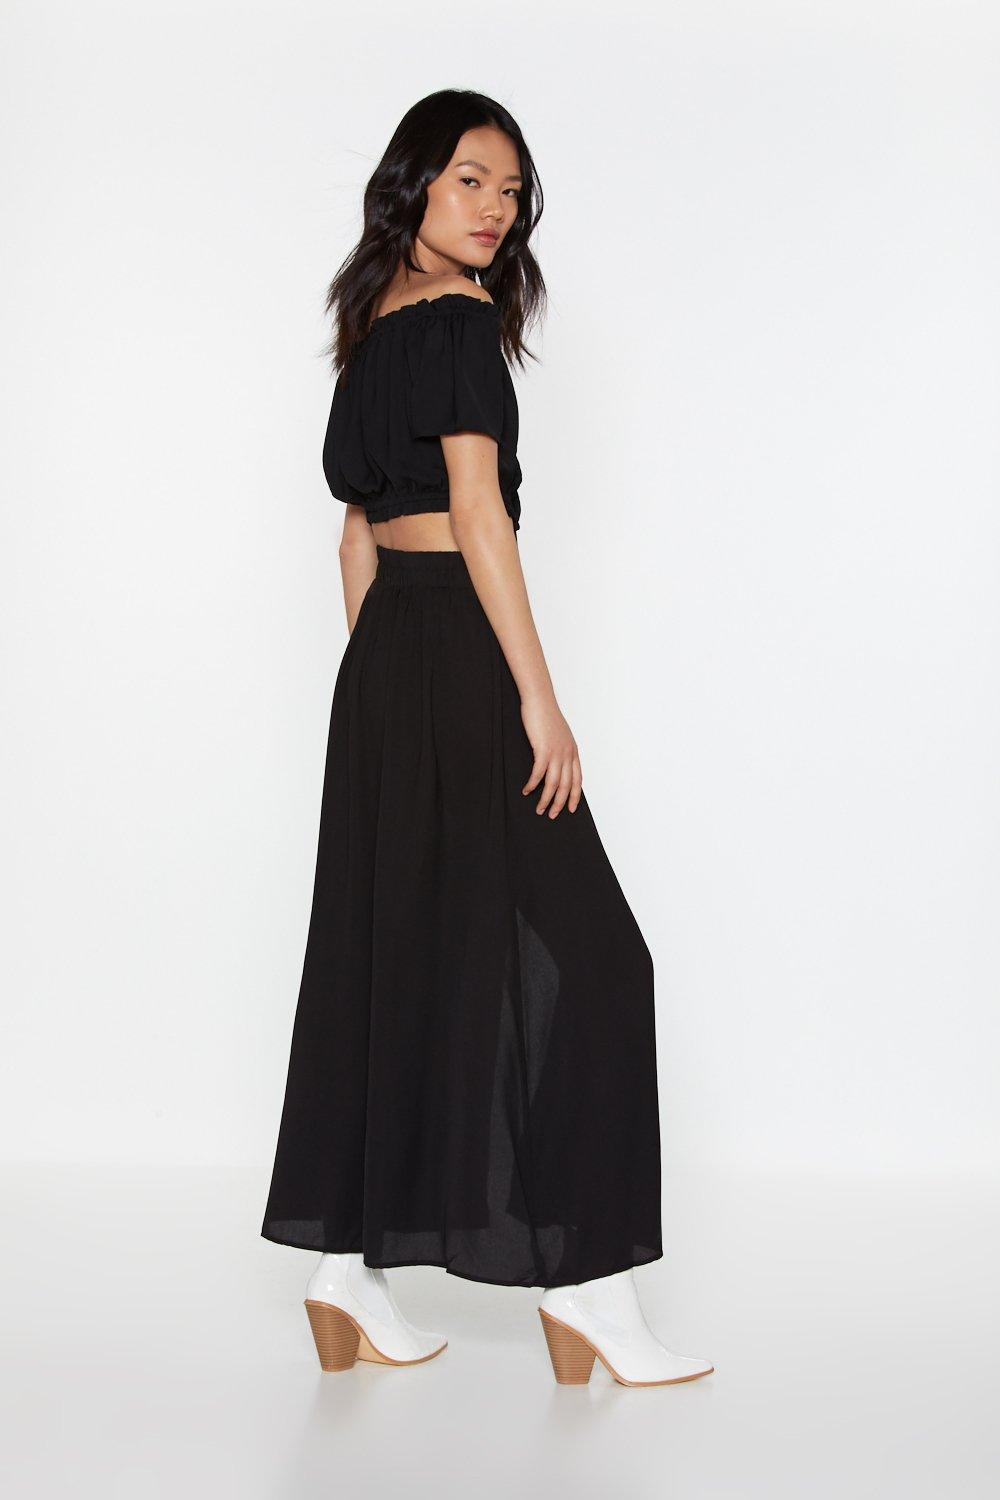 53d0ef6a47 Outfit Complete Off-the-Shoulder and Midi Skirt Set   Shop Clothes ...